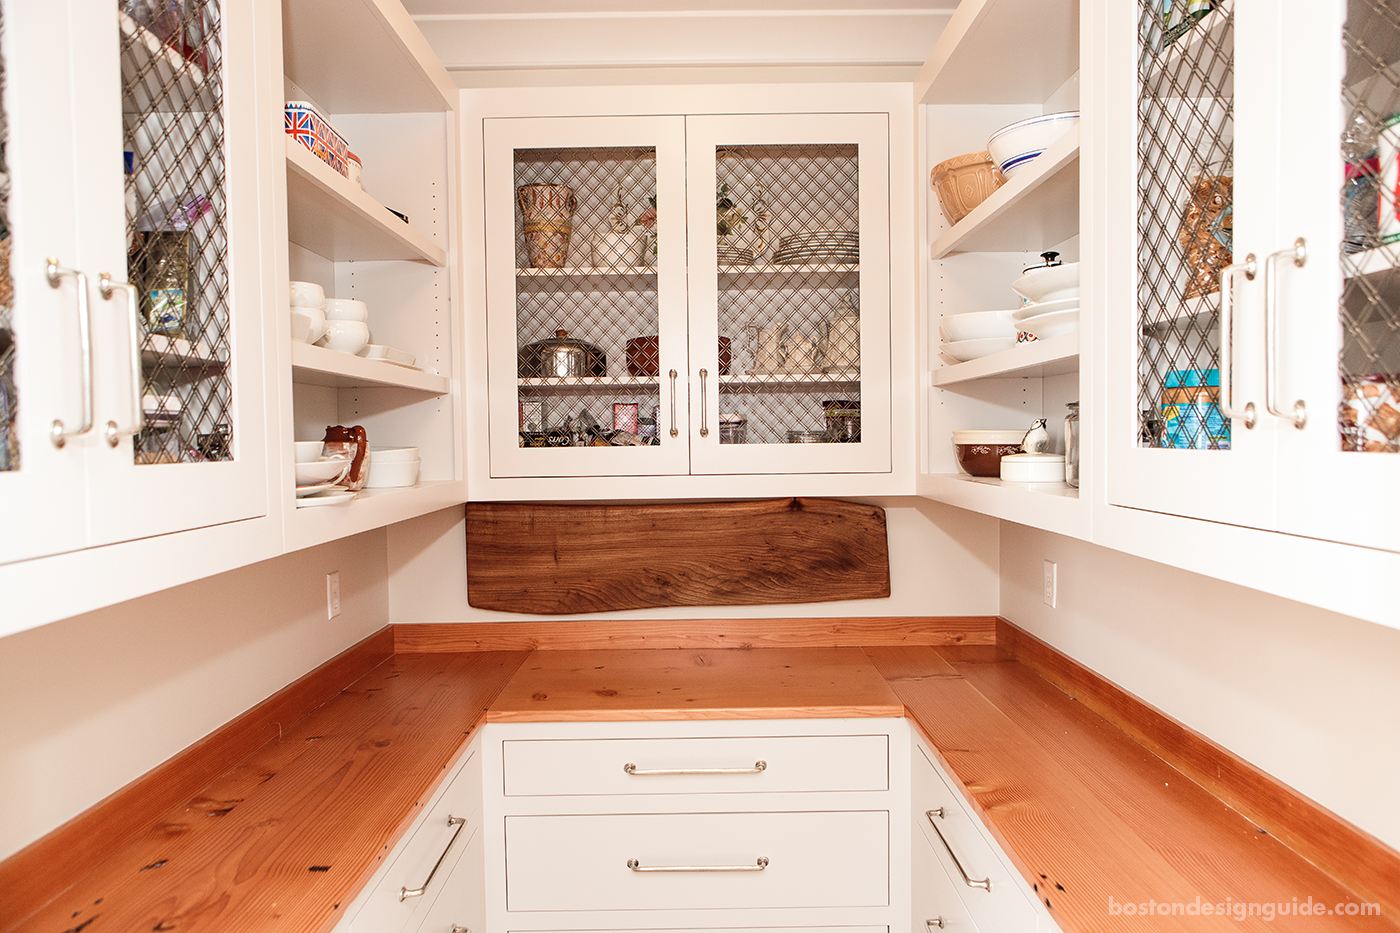 Dream Kitchen Must-Have: Walk-In Pantry